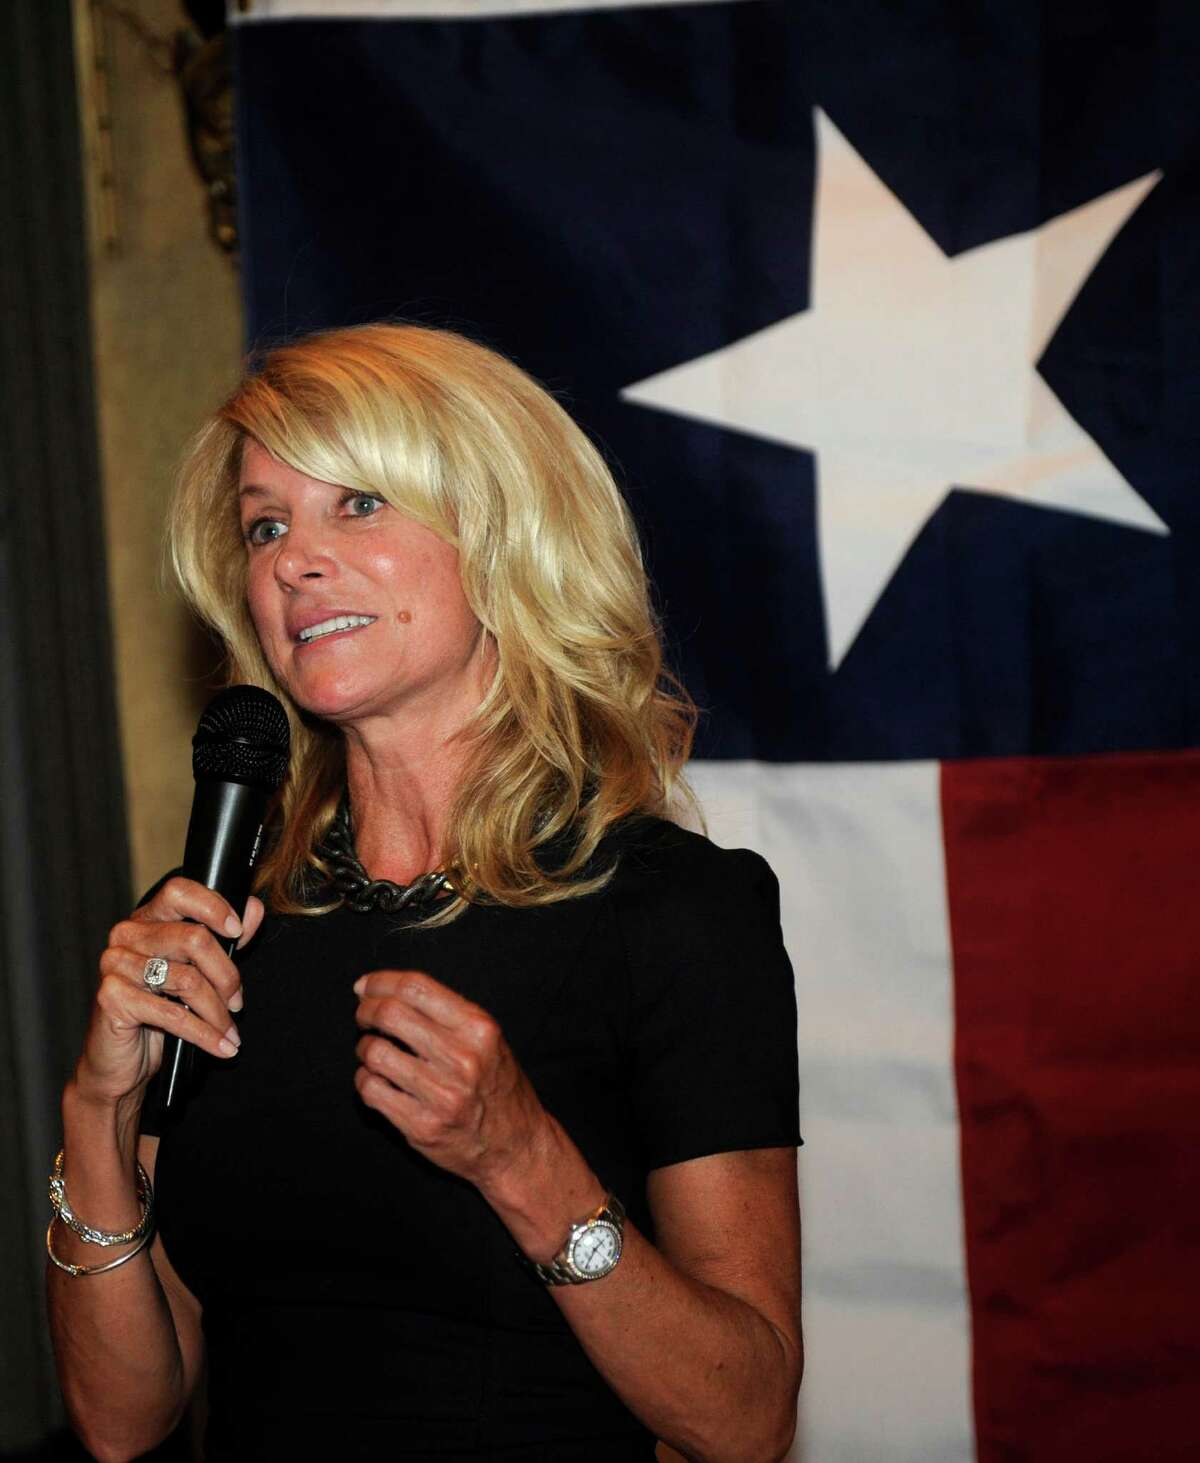 Texas State Senator Wendy Davis, famous for her 12-hour filibuster attempt against an anti-abortion rights bill, speaks at a fundraiser, Thursday, July 25, 2013, in Washington, D.C. (AP Photo/Nick Wass)